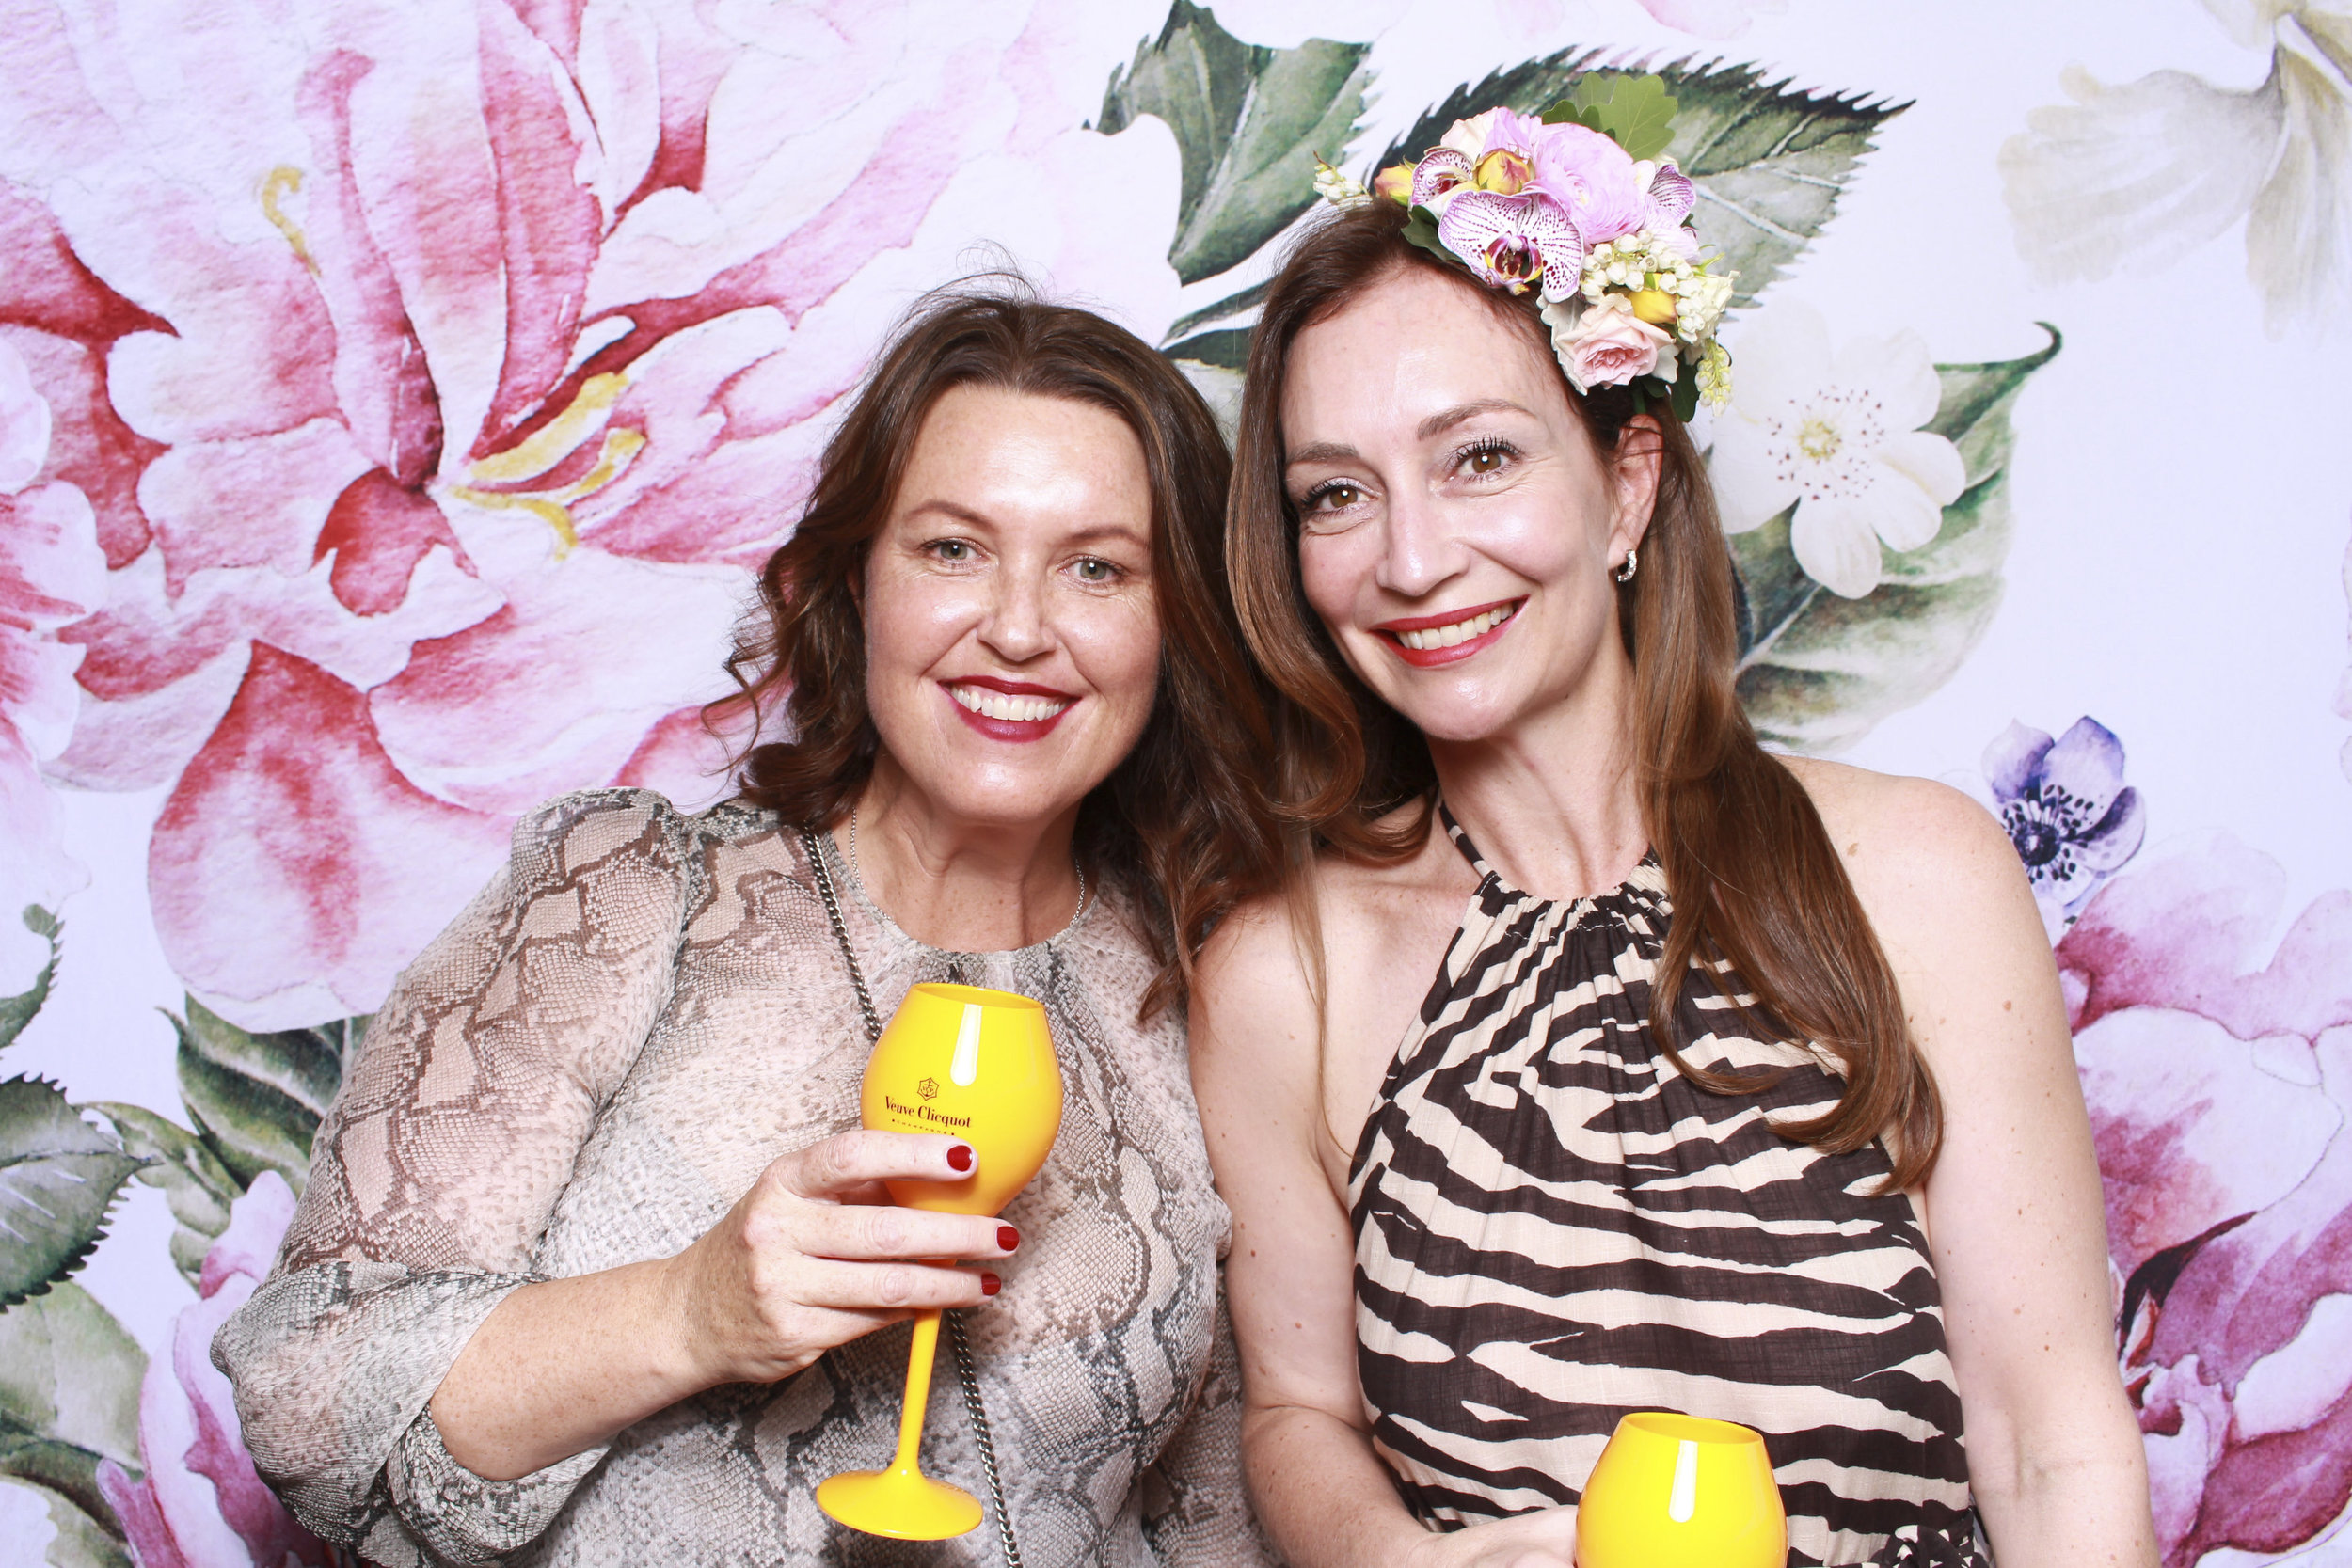 photo booth hire sydney backdrop floral3.jpg